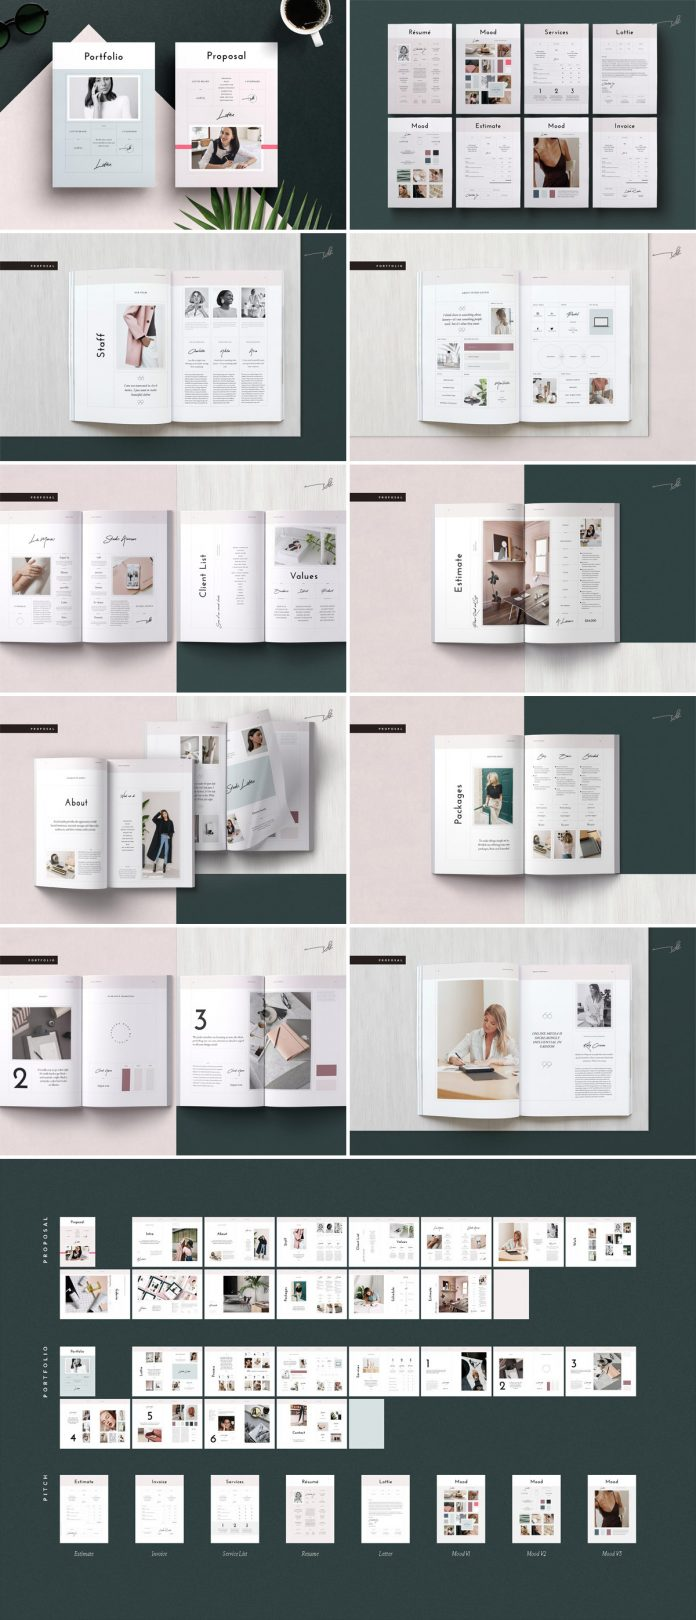 Pitch Pack Adobe InDesign Template from Studio Standard